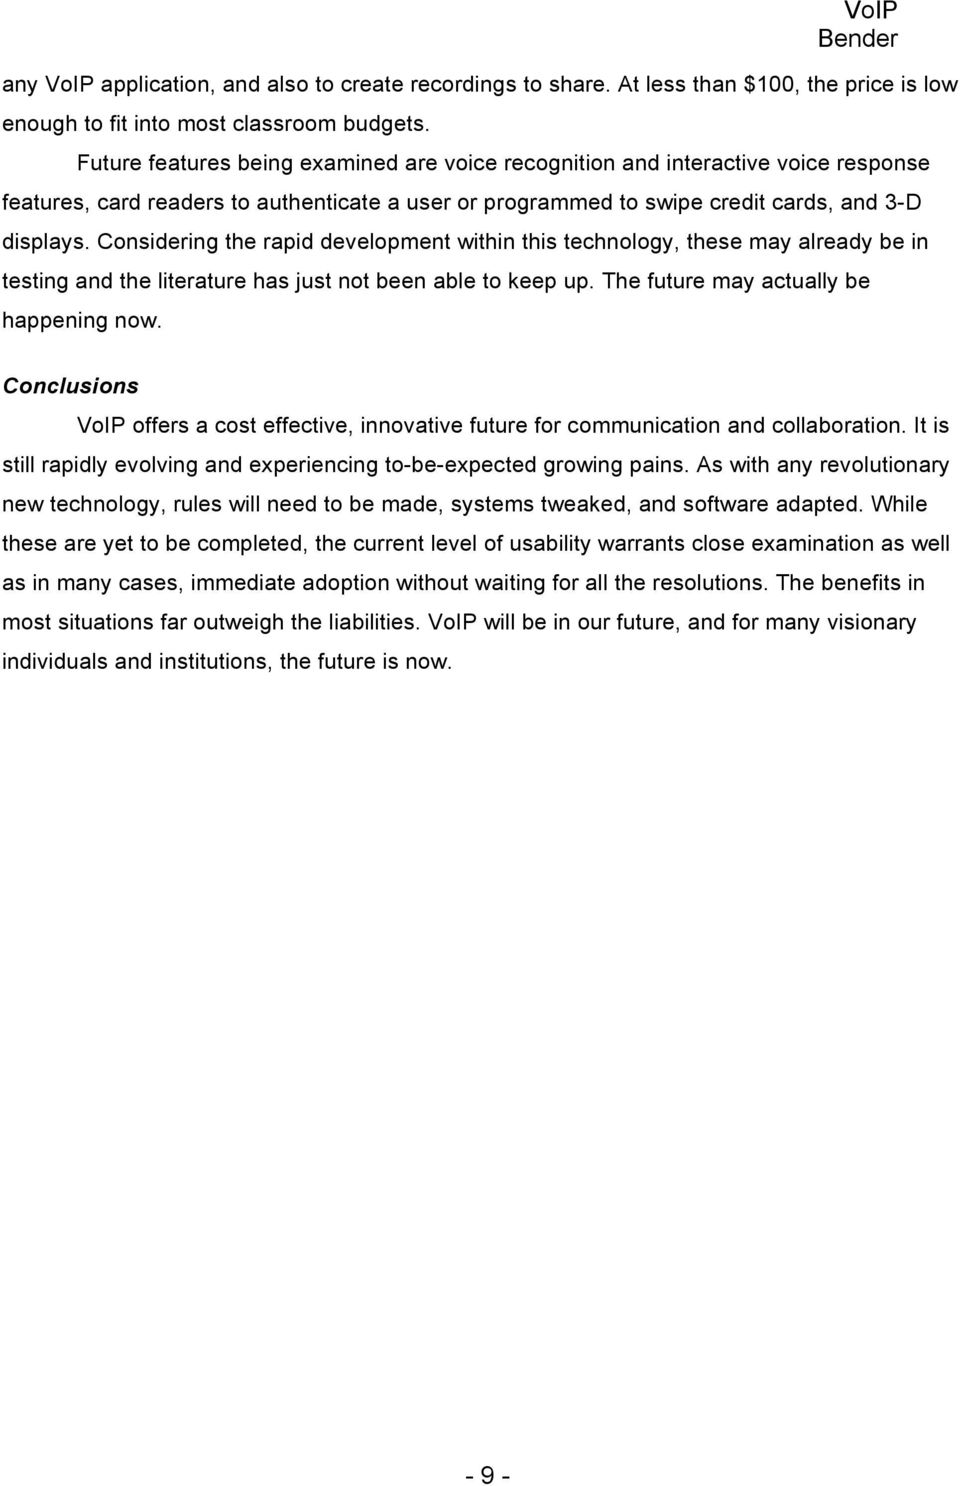 Considering the rapid development within this technology, these may already be in testing and the literature has just not been able to keep up. The future may actually be happening now.